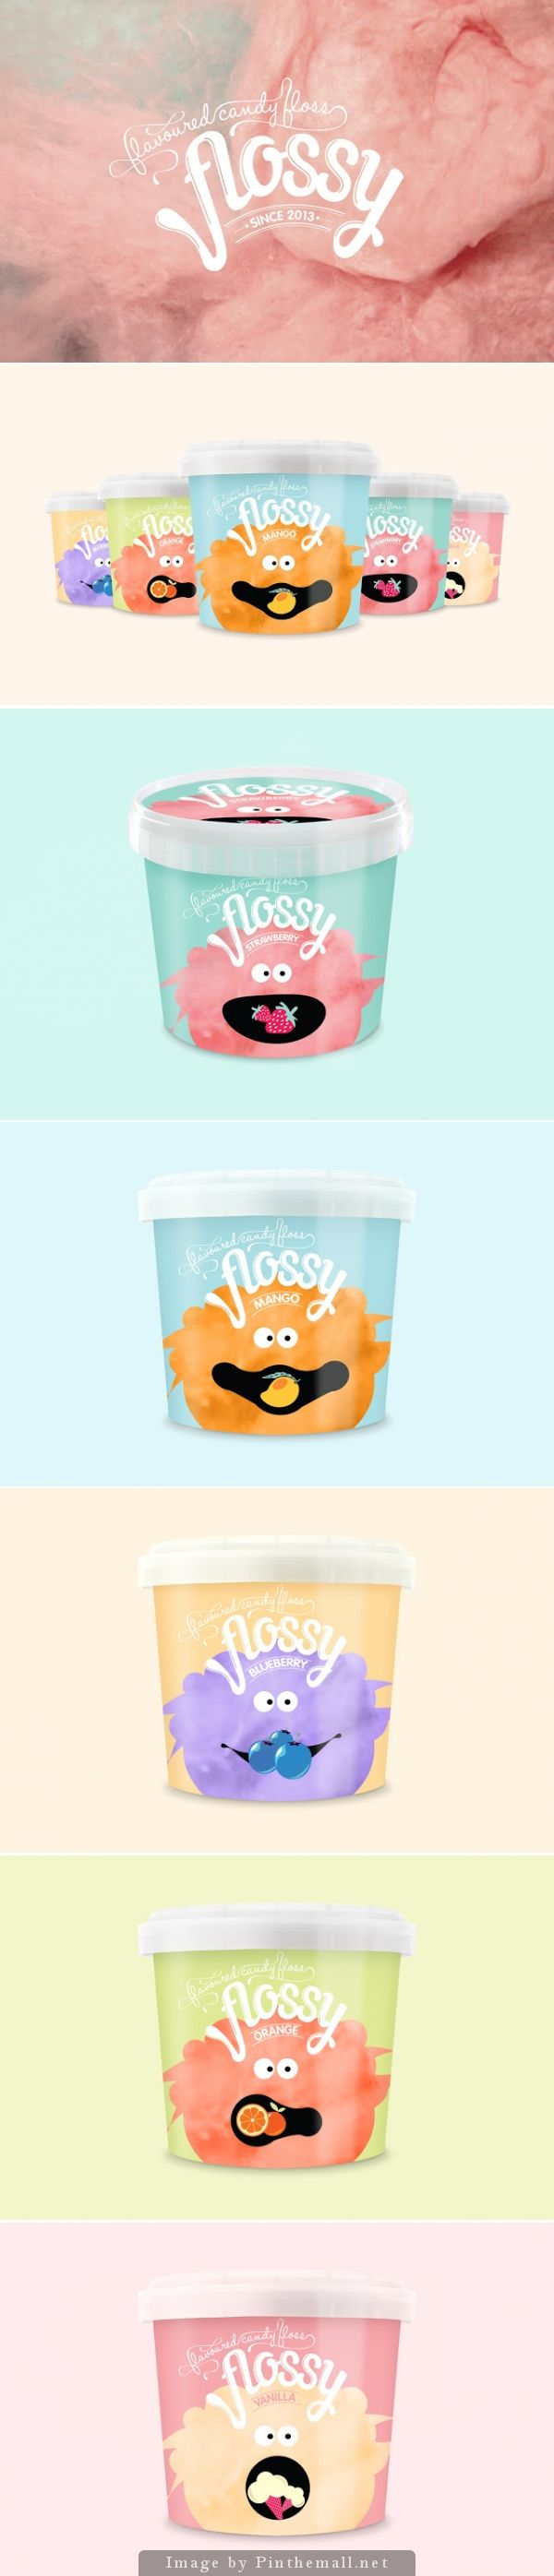 FLOSSY - Flavoured Candy Floss is just too cute #packaging : ) PD